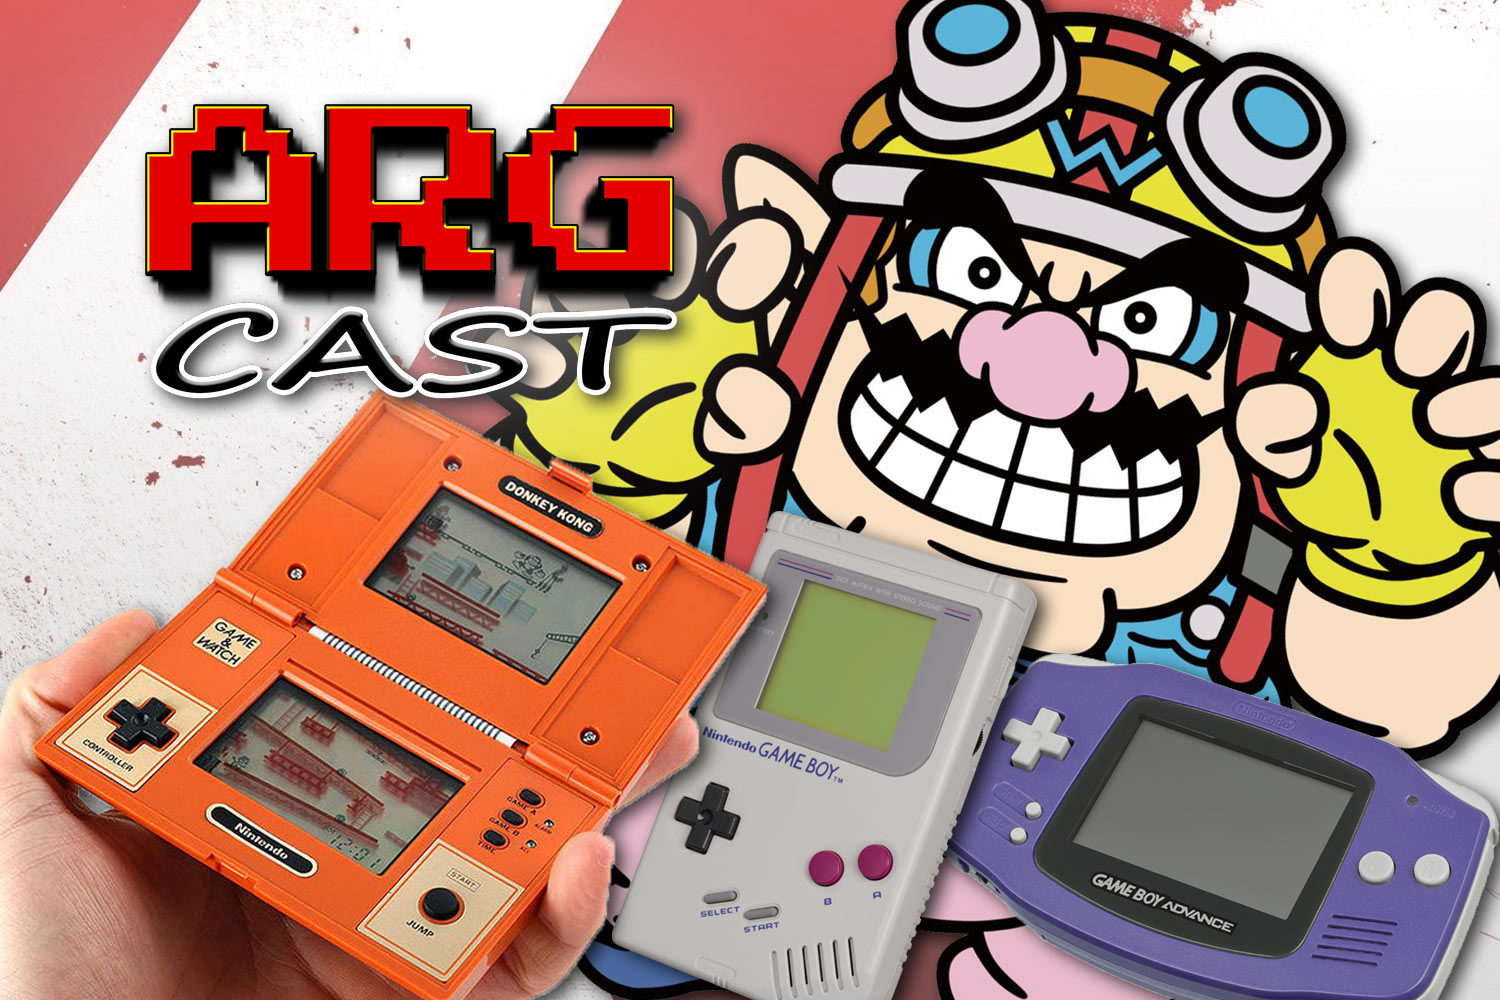 ARGcast #151: Nintendo Handhelds with Andre Tipton